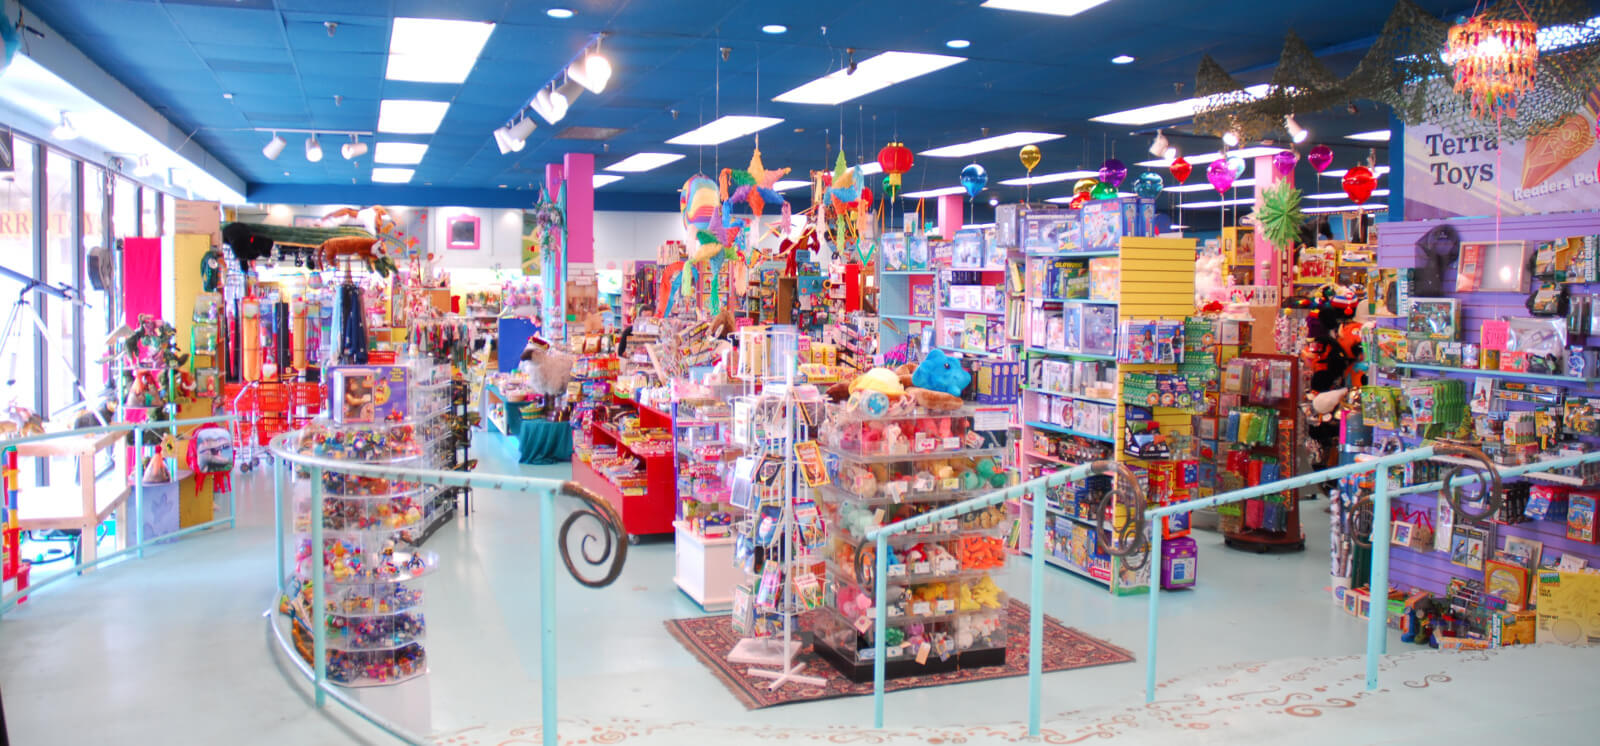 ts point toy store - 1600×746